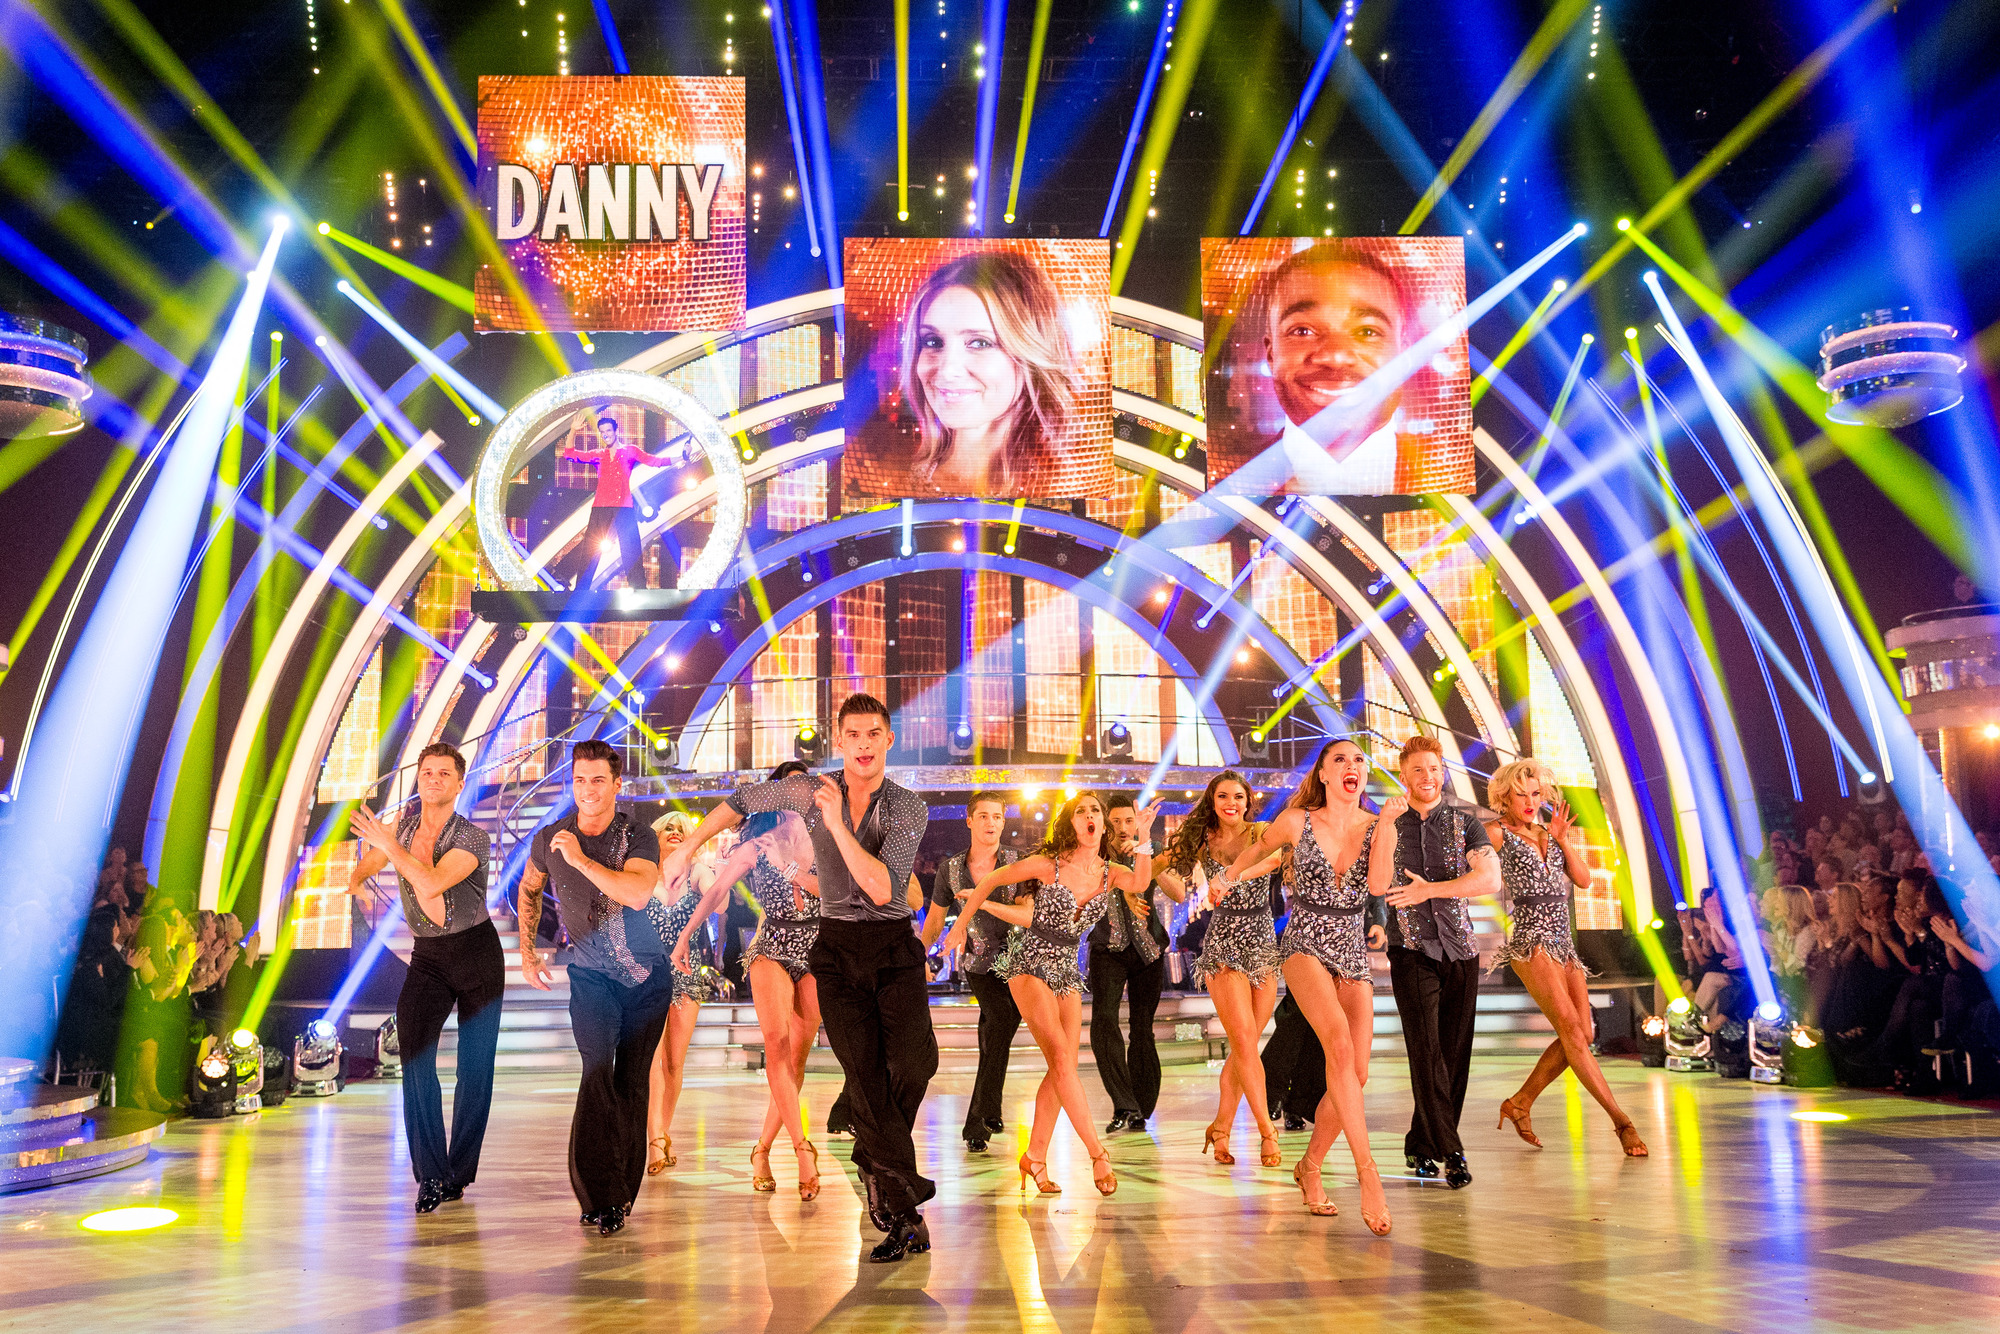 The Strictly Come Dancing dancers - (C) BBC - Photographer: Guy Levy